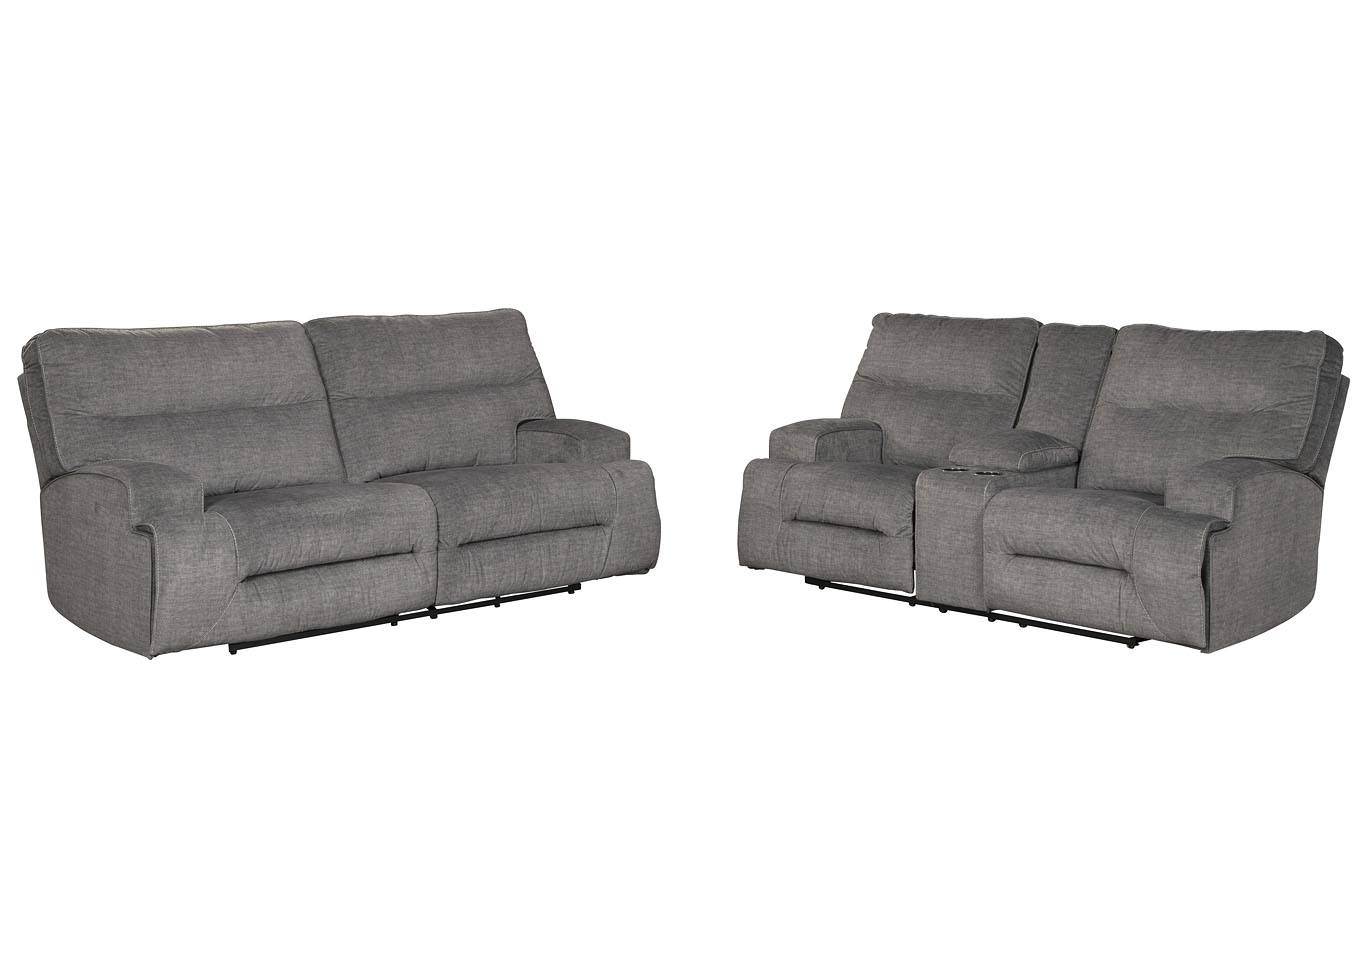 Coombs Charcoal Reclining Sofa And Loveseat Best Buy Furniture And Mattress